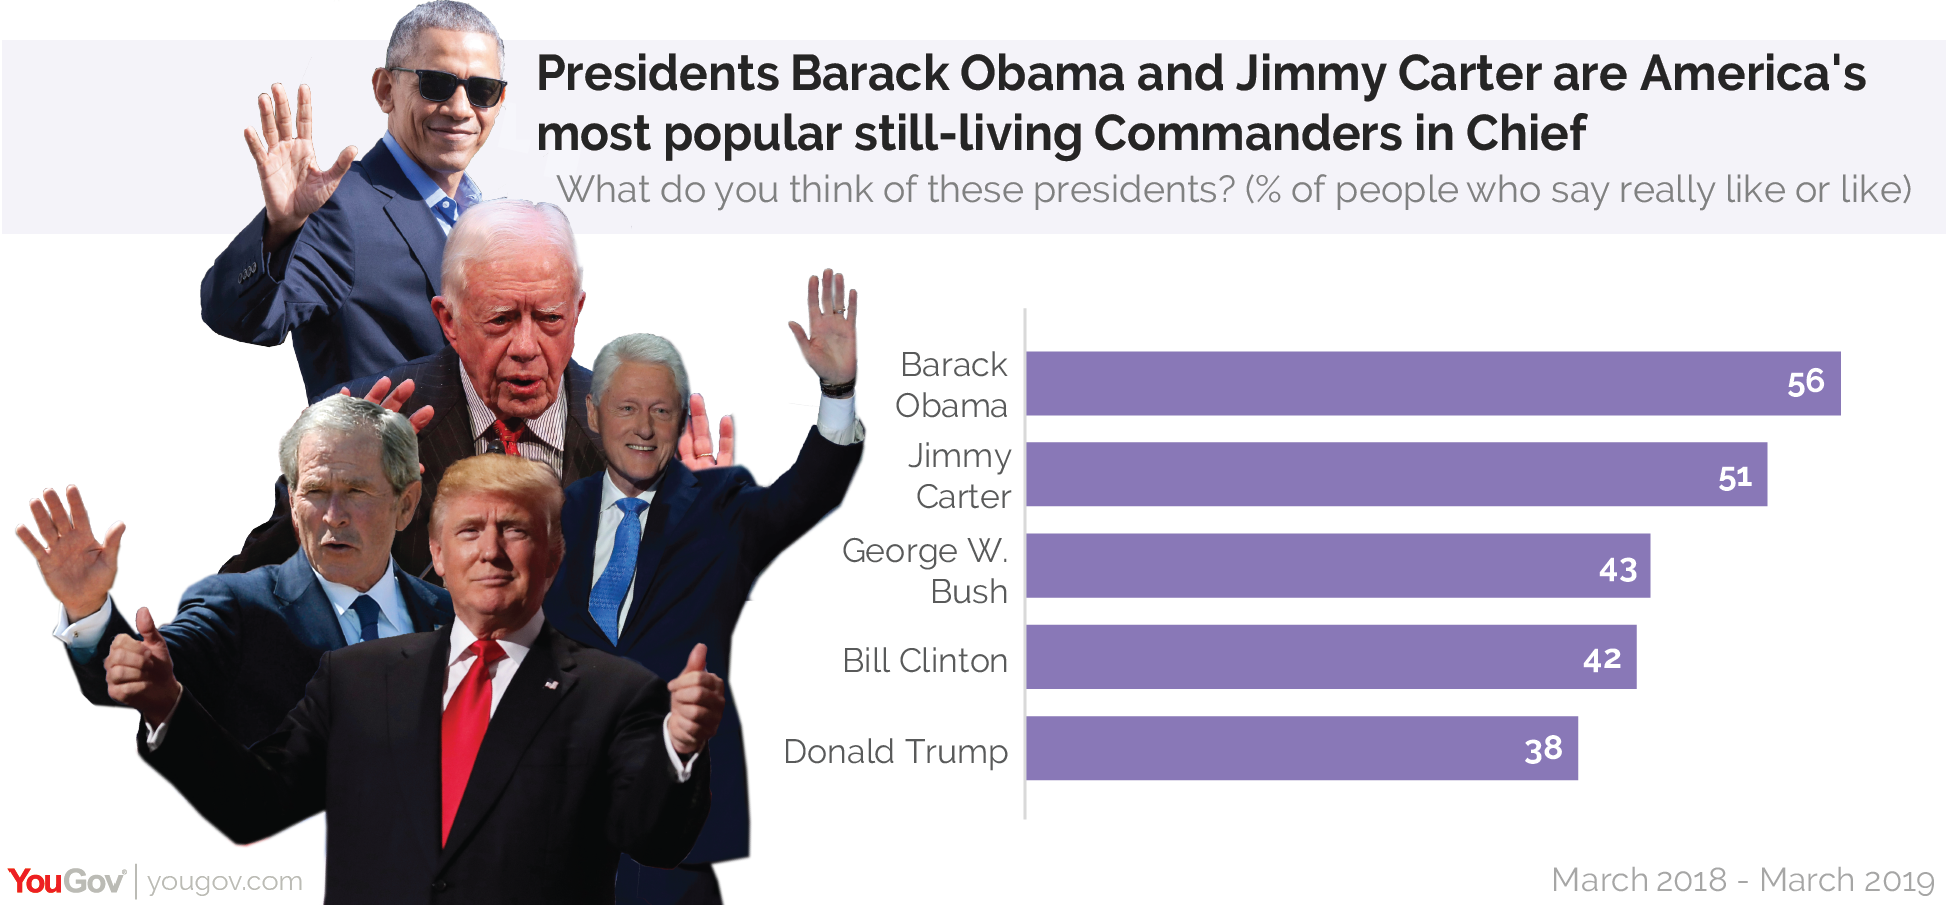 Presidents Barack Obama and Jimmy Carter are America's most popular still-living Commanders in Chief